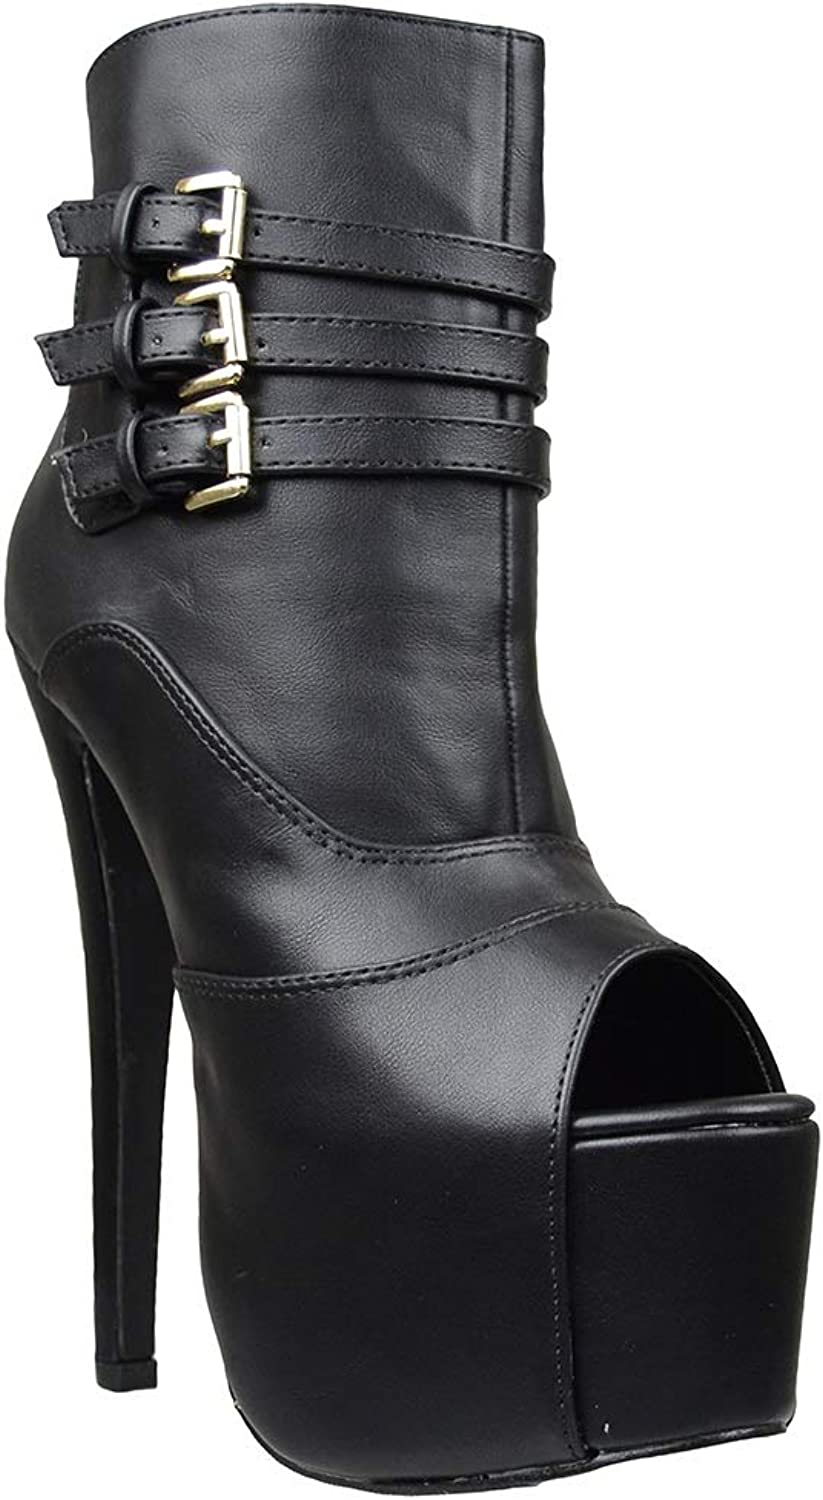 Generation Y Womens Ankle Boots Peep Toe Stacked Buckle Sexy Dress shoes Black